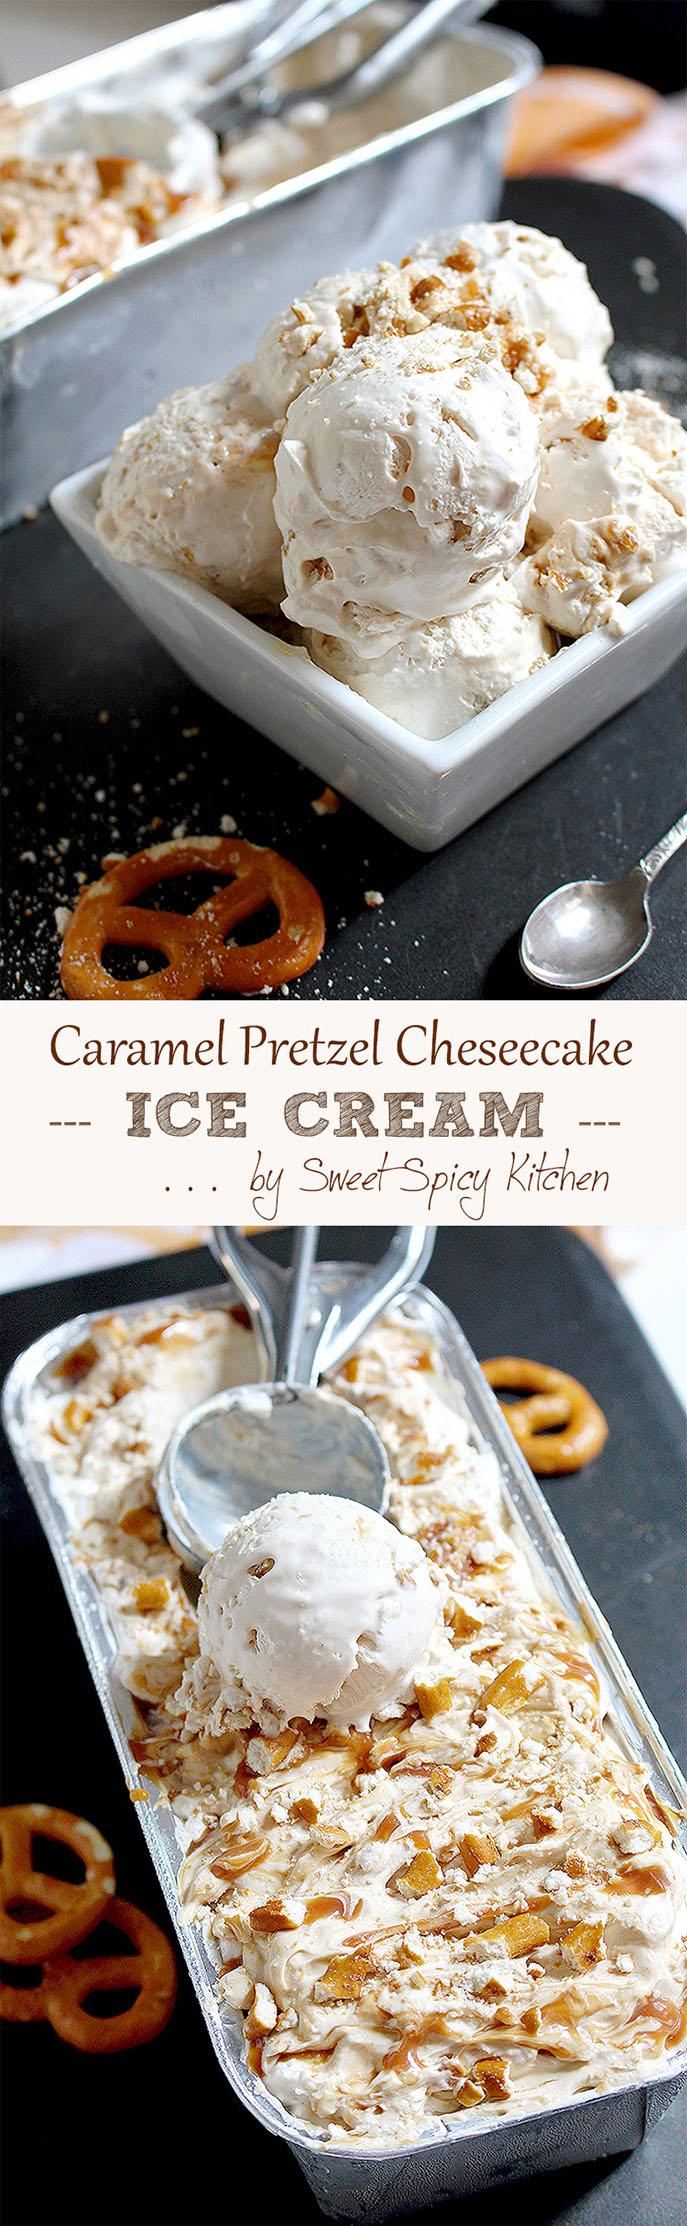 Great combo of pretzel and caramel cheesecake in form of ice cream. Absolutely delicious and tasty Caramel Pretzel Cheesecake Ice Cream.